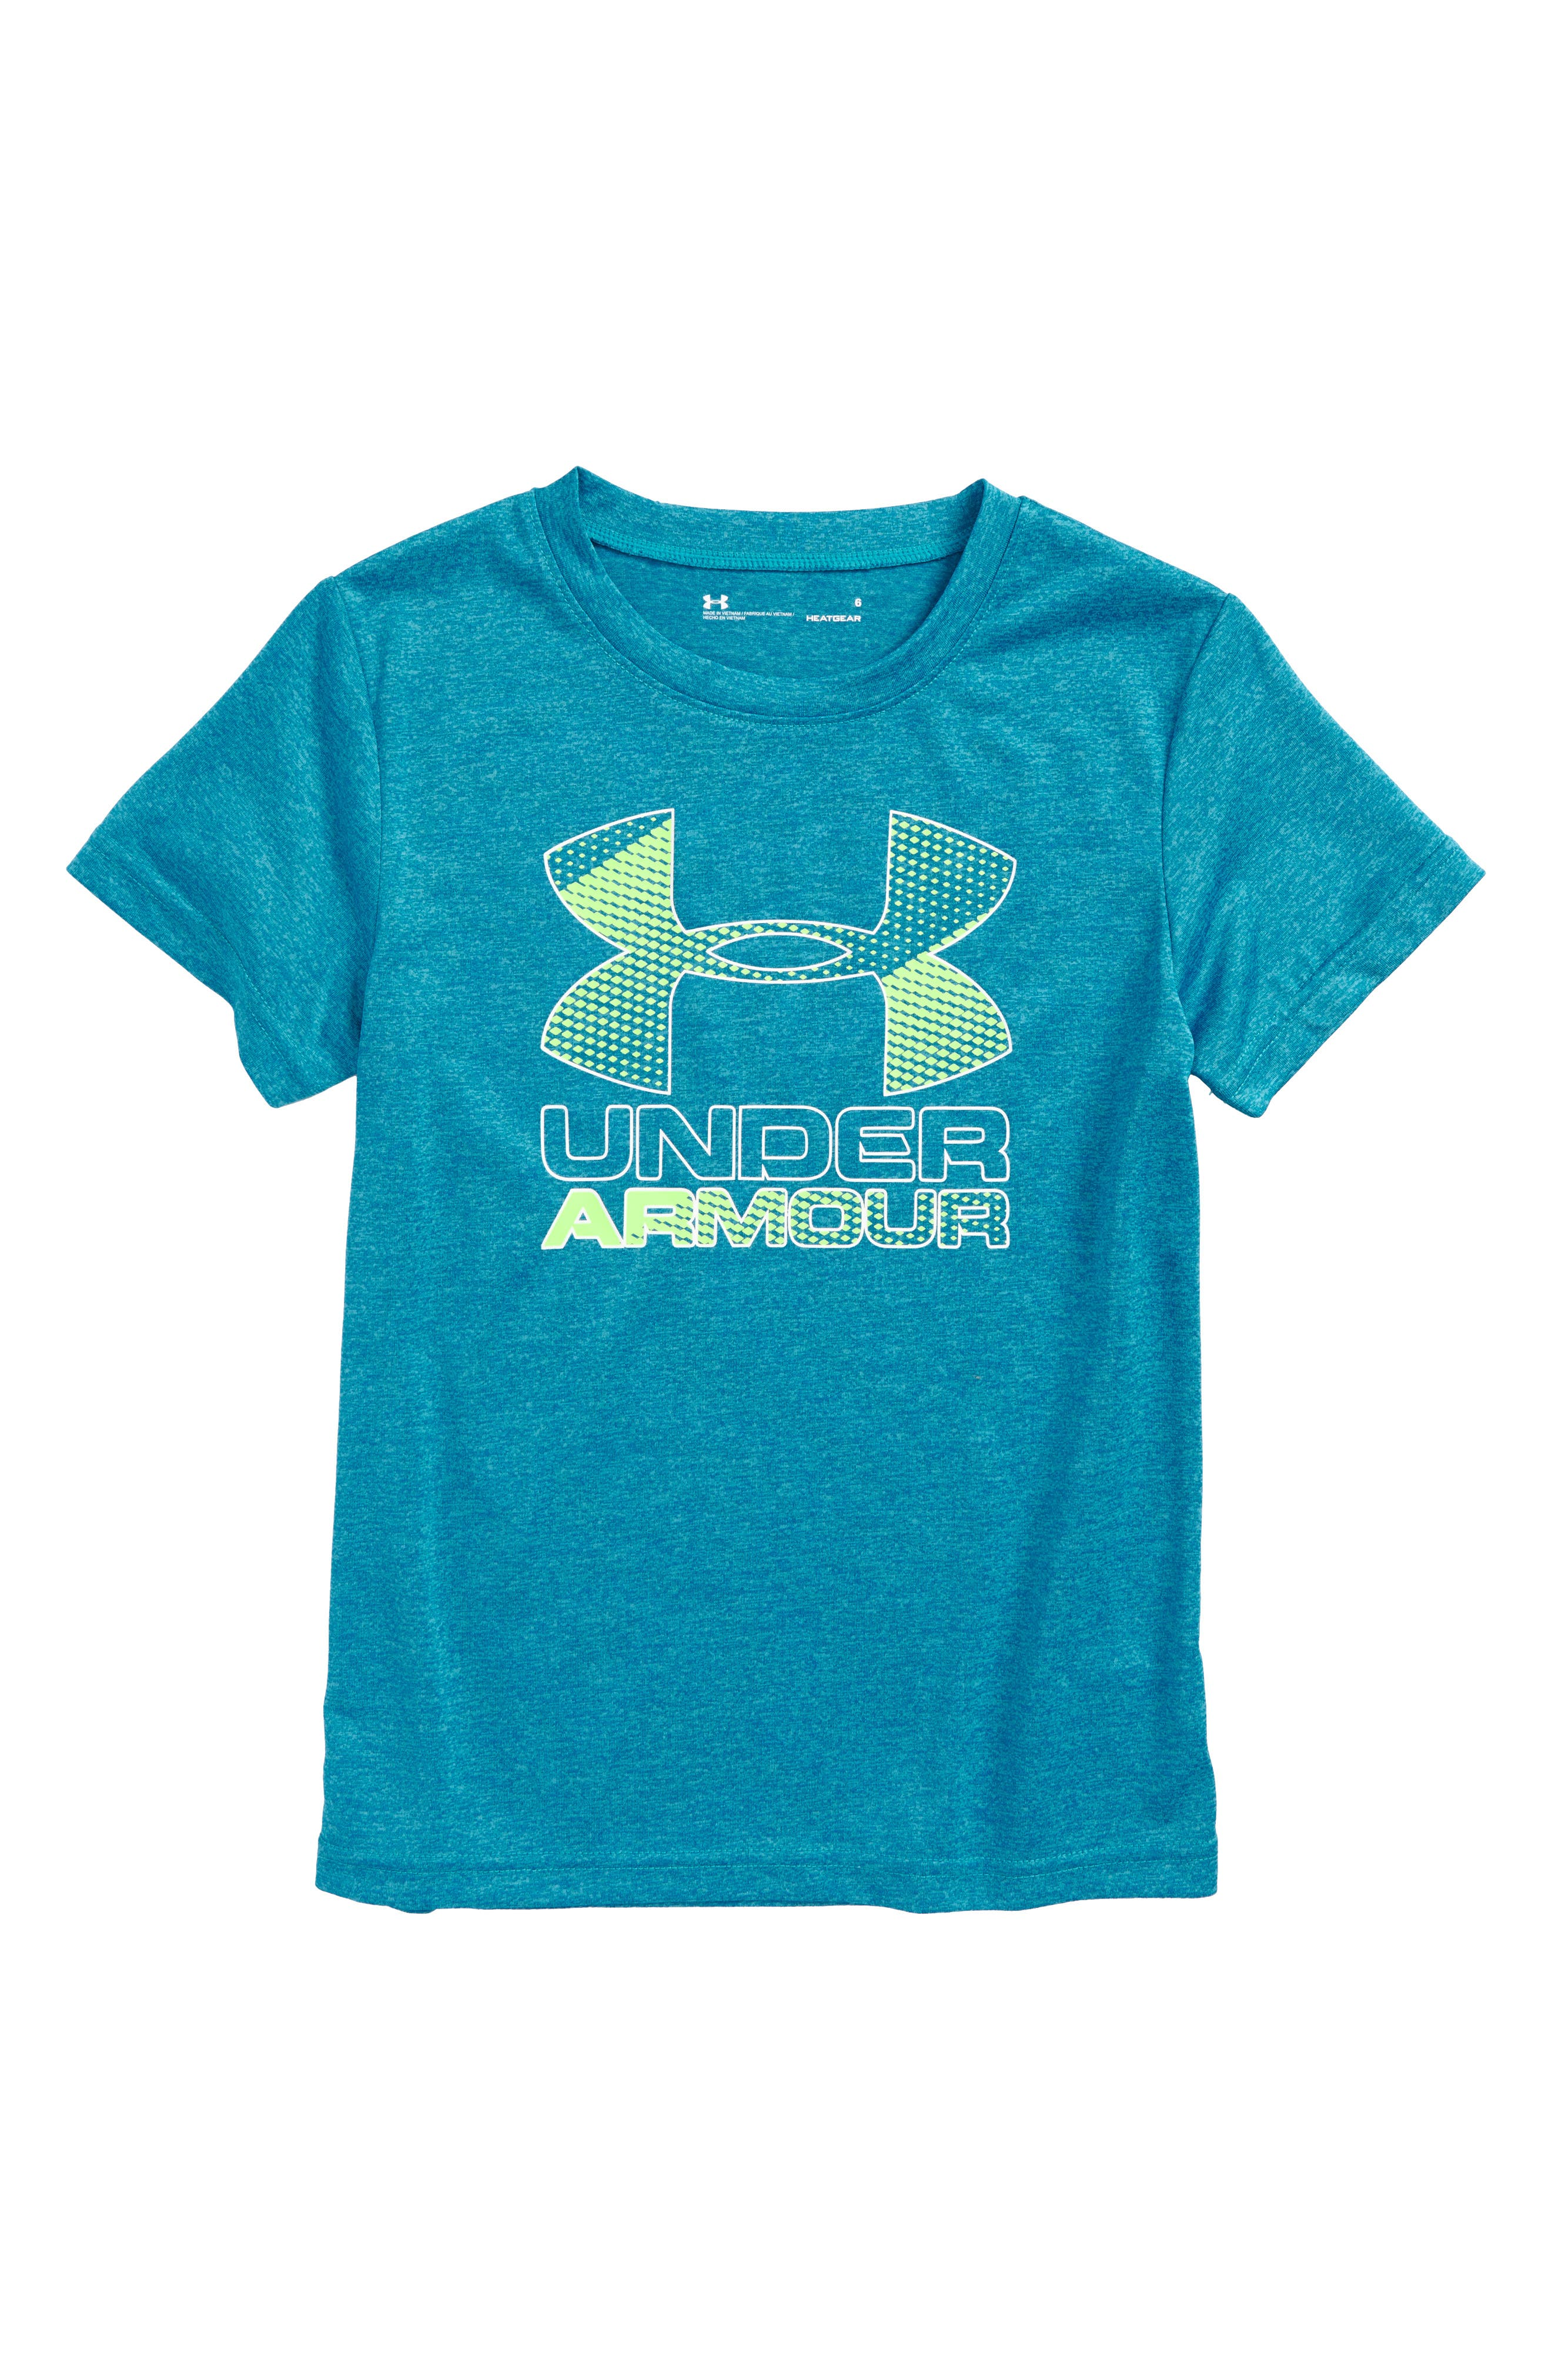 Alternate Image 1 Selected - Under Armour Big Logo Hybrid 2.0 HeatGear® T-Shirt (Toddler Boys & Little Boys)